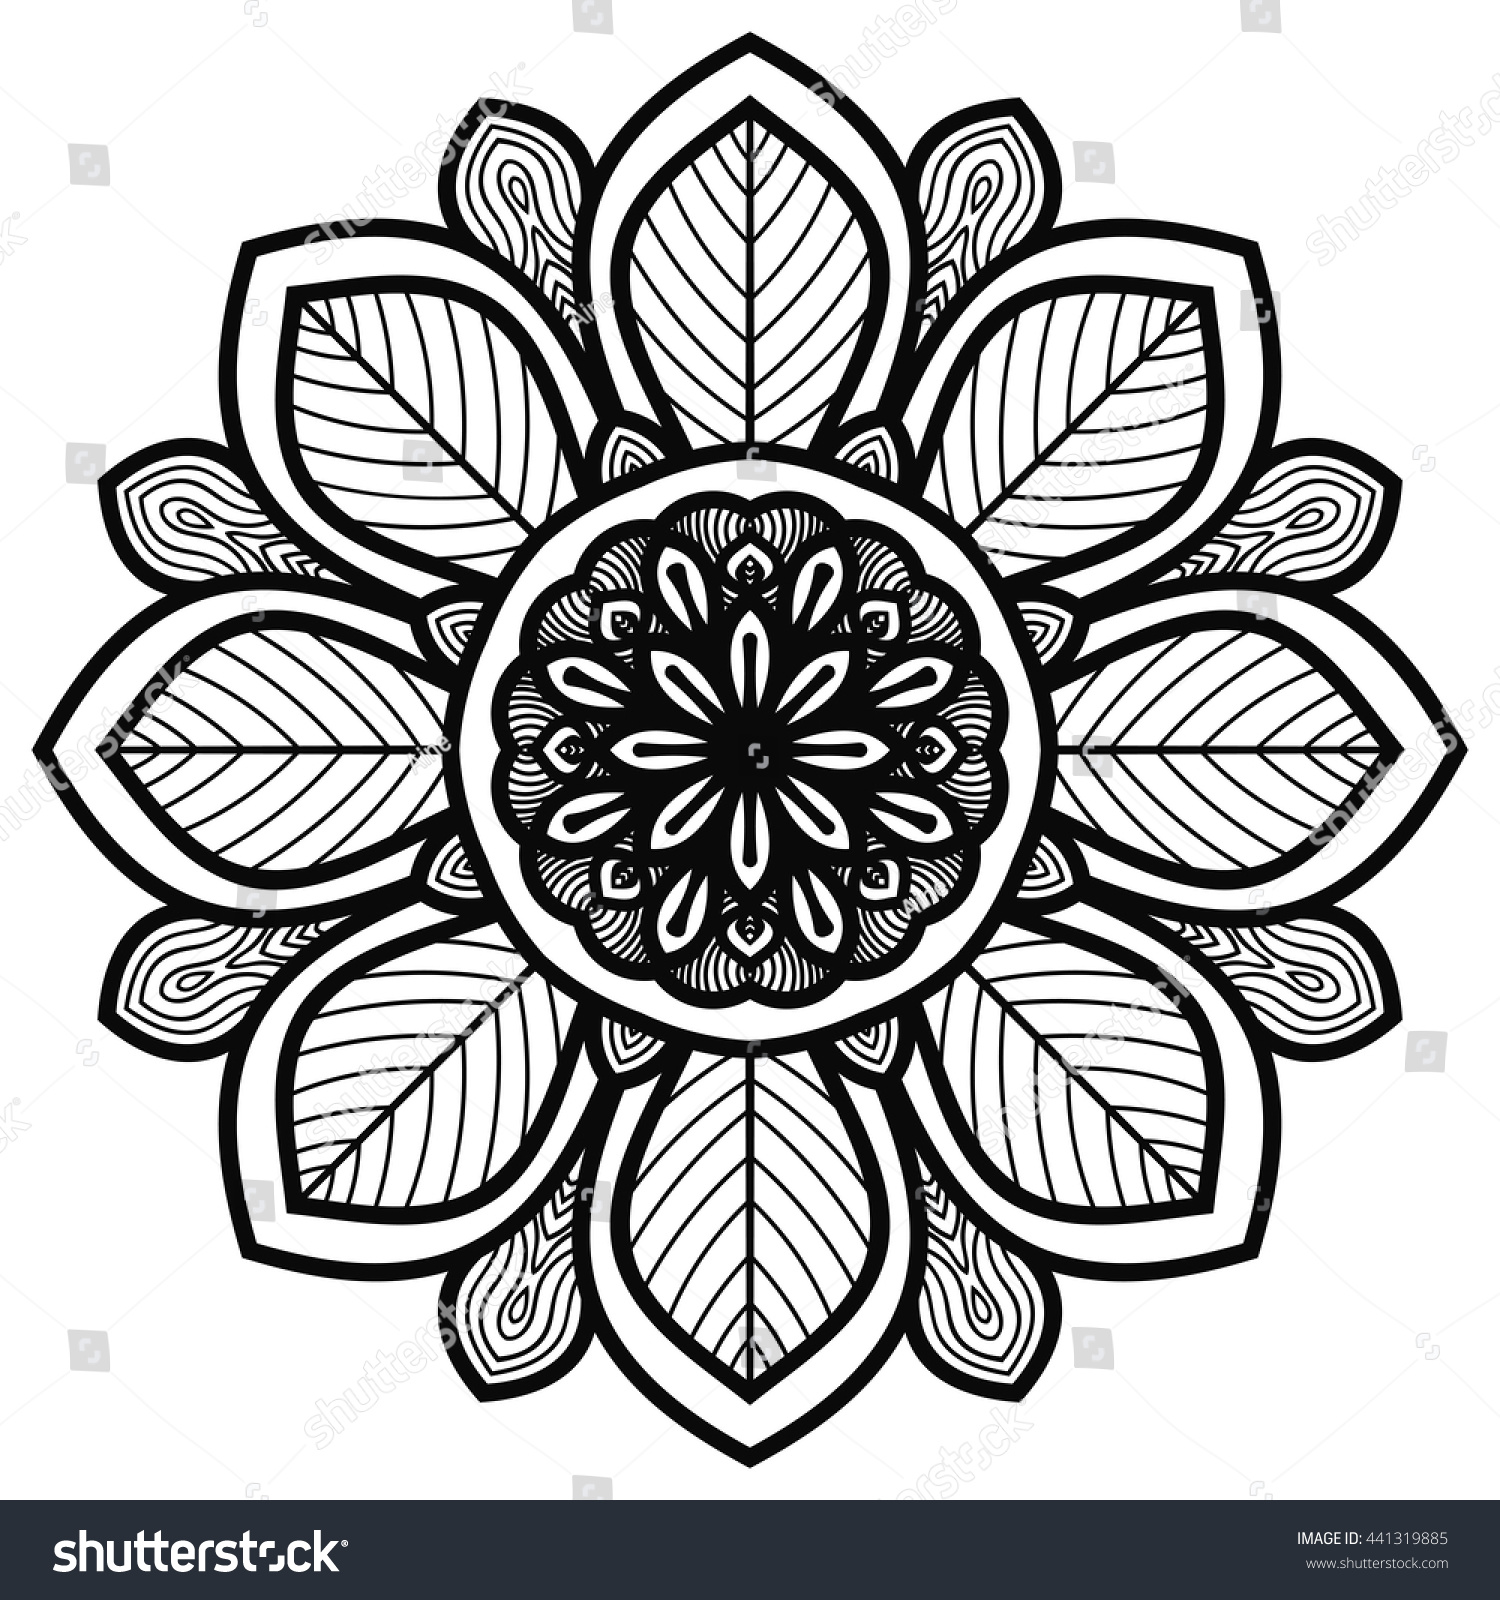 Black Outline Wooden Mandala Vintage Forest Stock Vector